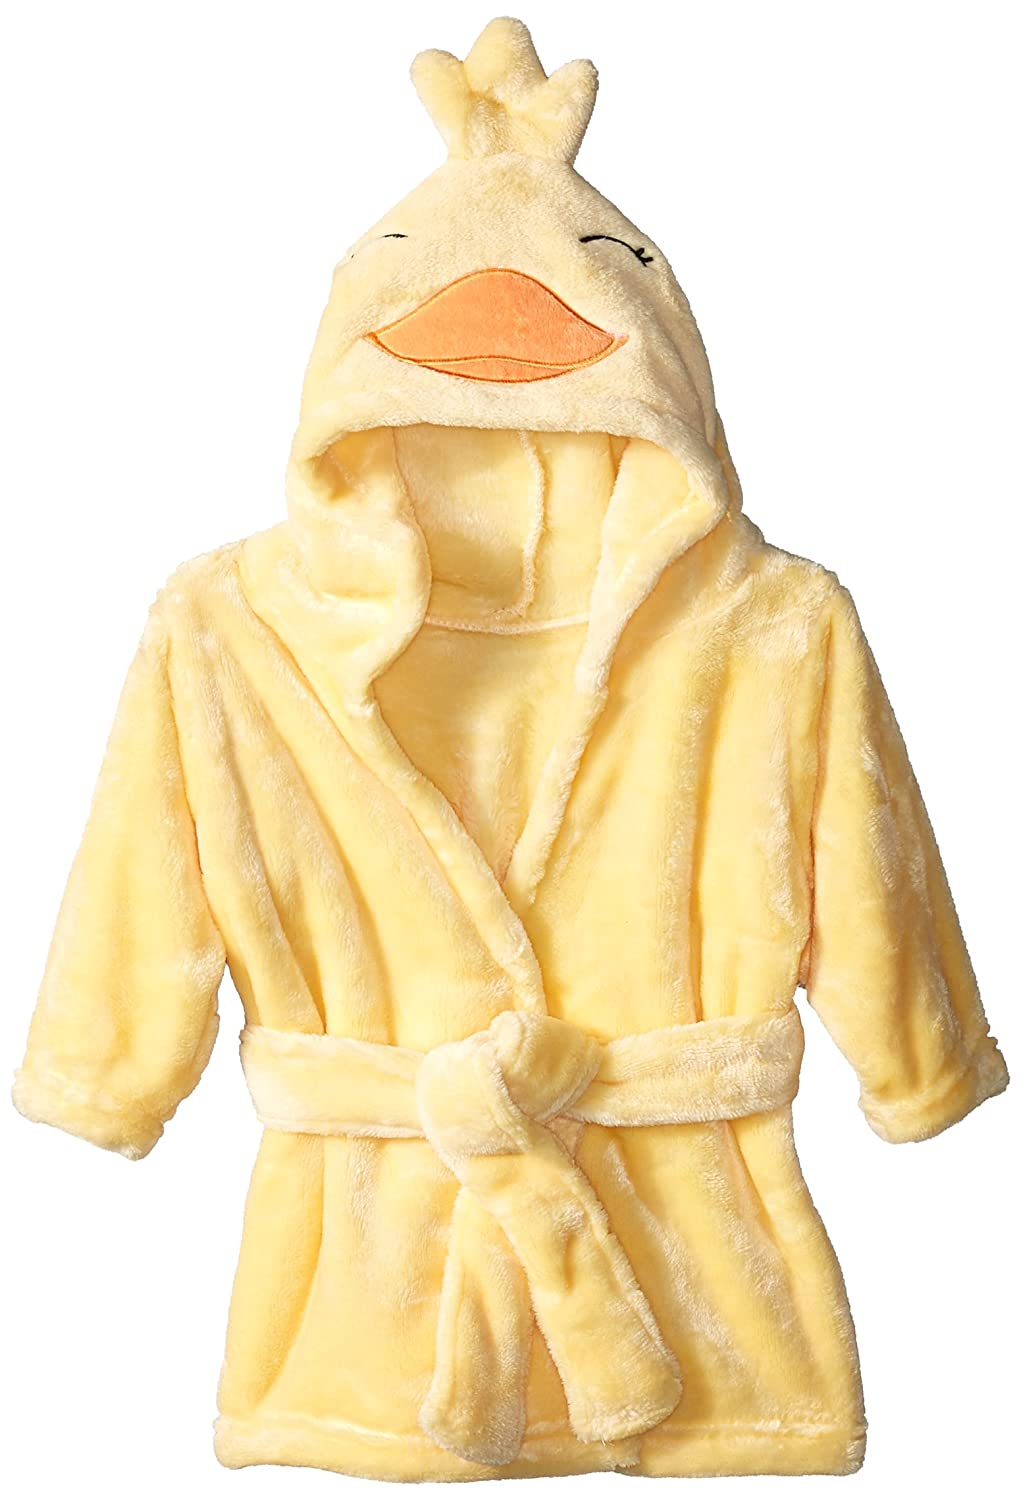 Hudson Baby Unisex Baby Plush Animal Face Robe, Duck, One Size, 0-9 Months